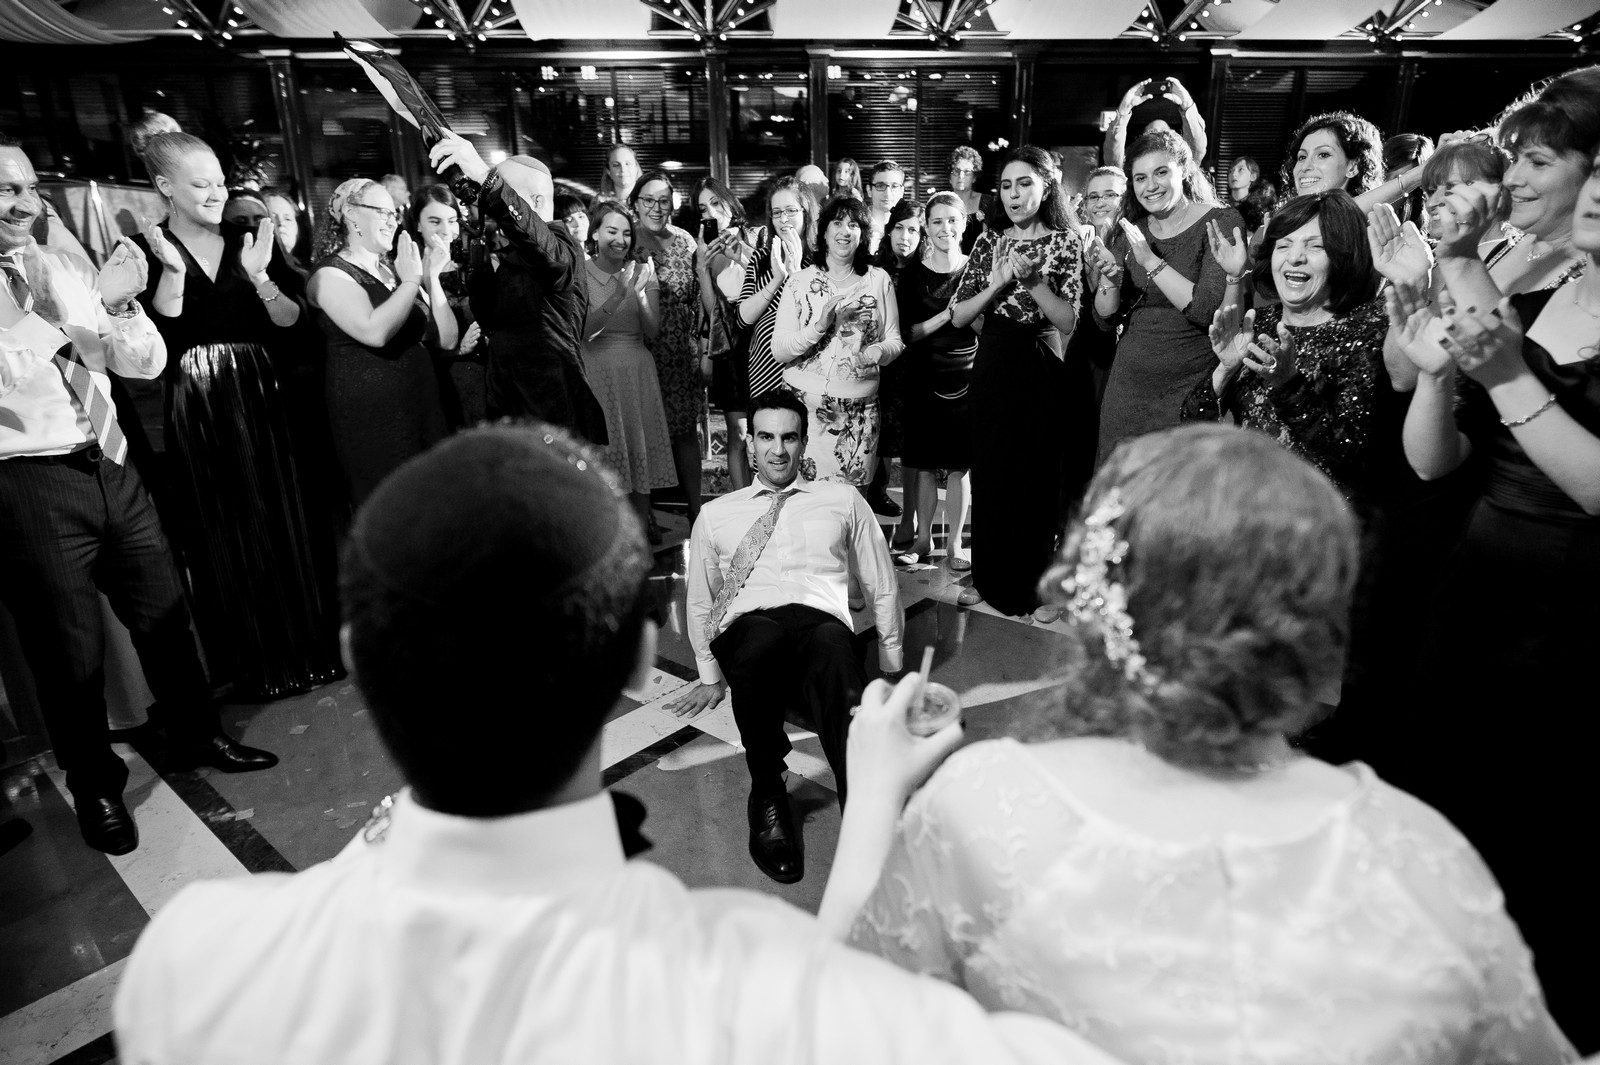 Sam and Yishai's Modern Orthodox Jewish Wedding at Crest Hollow Country Club, Woodbury NY, Photos by Chaim Schvarcz, Bride, Grooom, Dancing